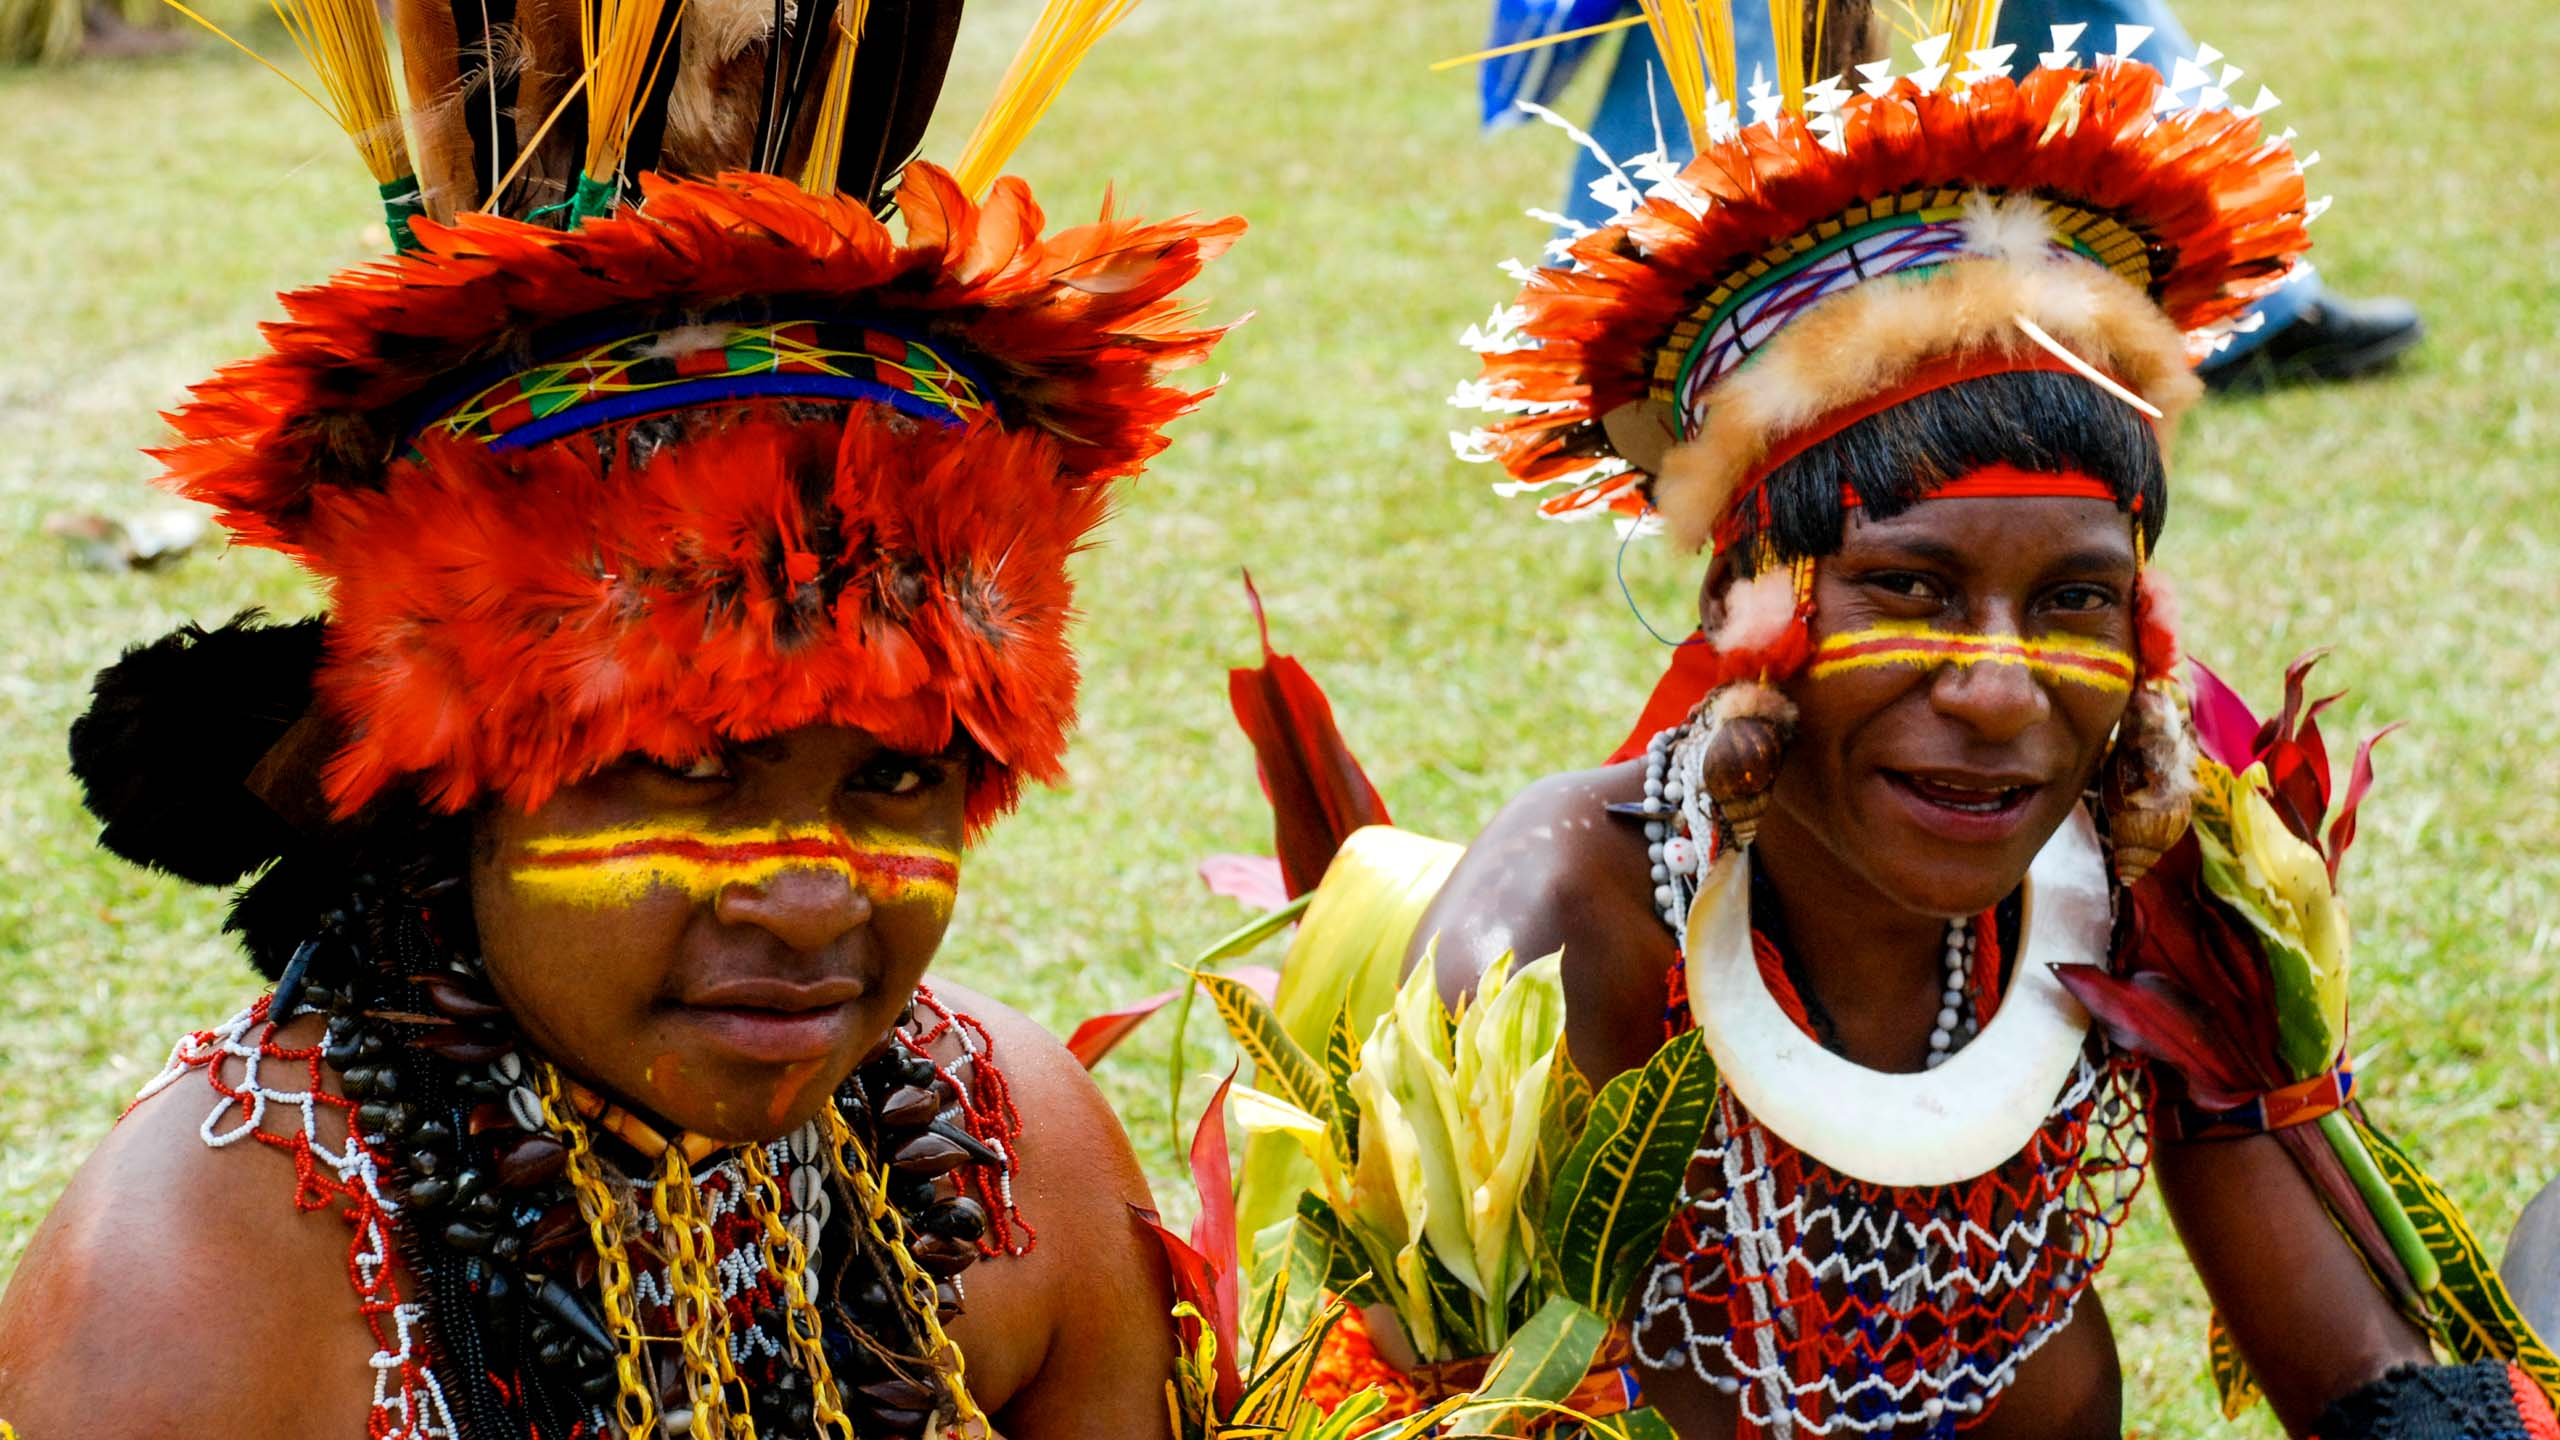 Native people dressed in Papua New Guinea traditional attire